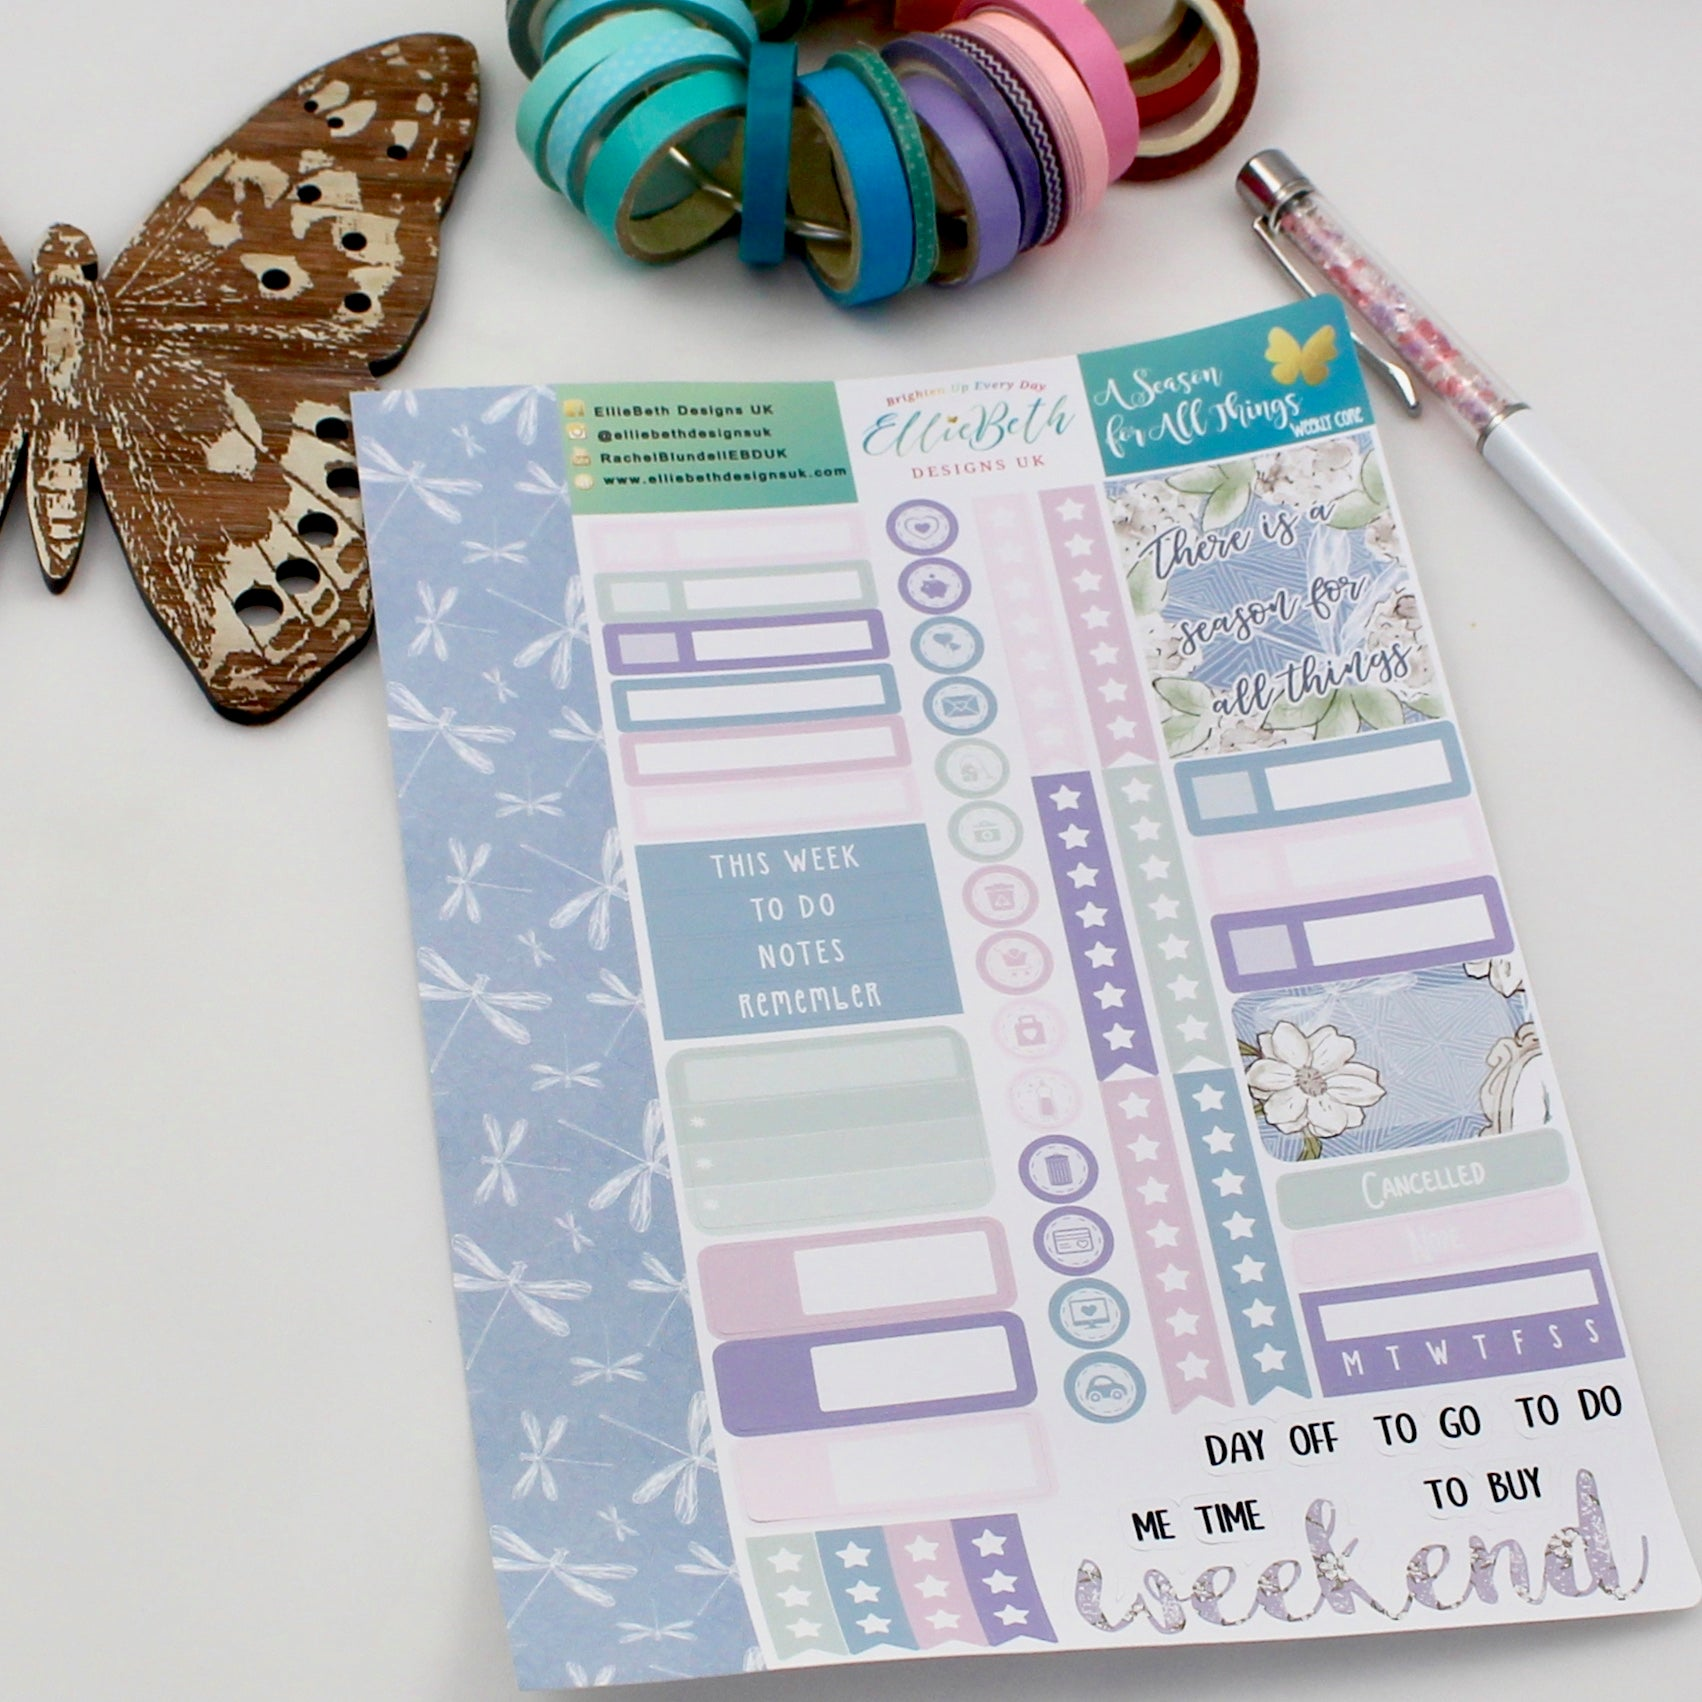 'A Season for All Things' - Weekly Core Sheet - A5 binder ready planner stickers